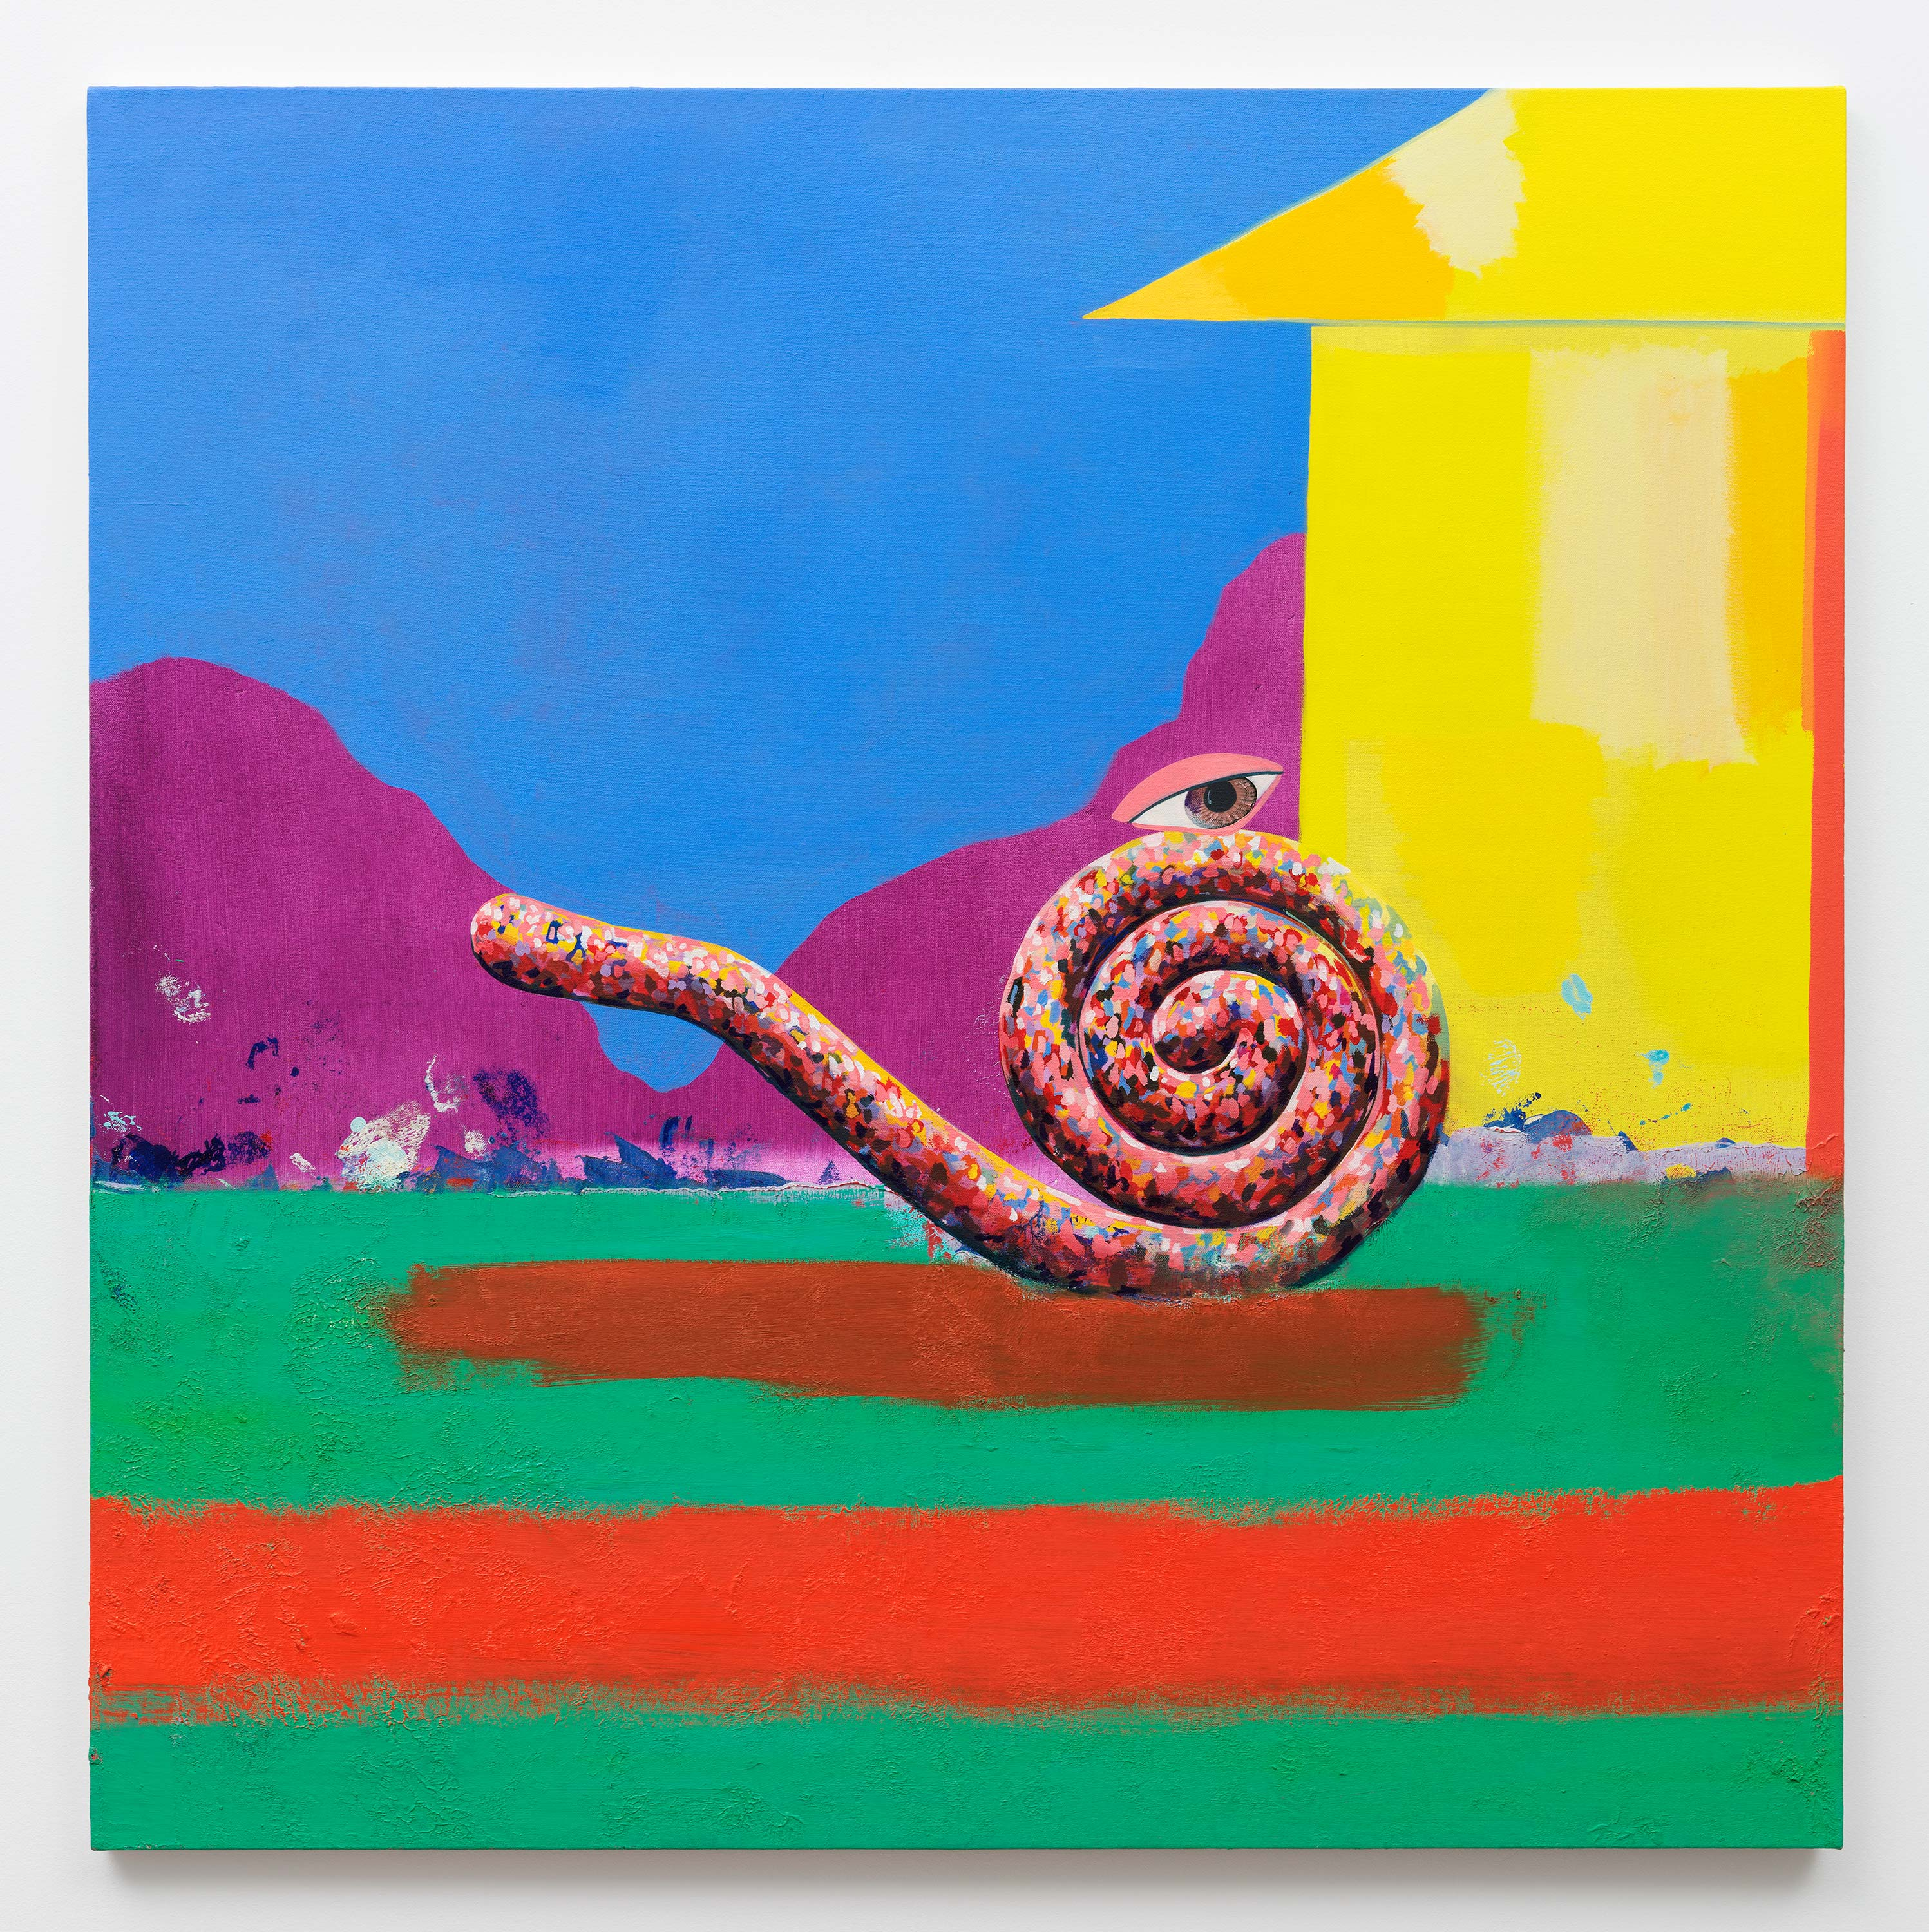 Paul Branca<br>Untitled, Spiral<br>2015<br>Oil on canvas<br>40 x 40 inches (101.6 x 101.6 cm)